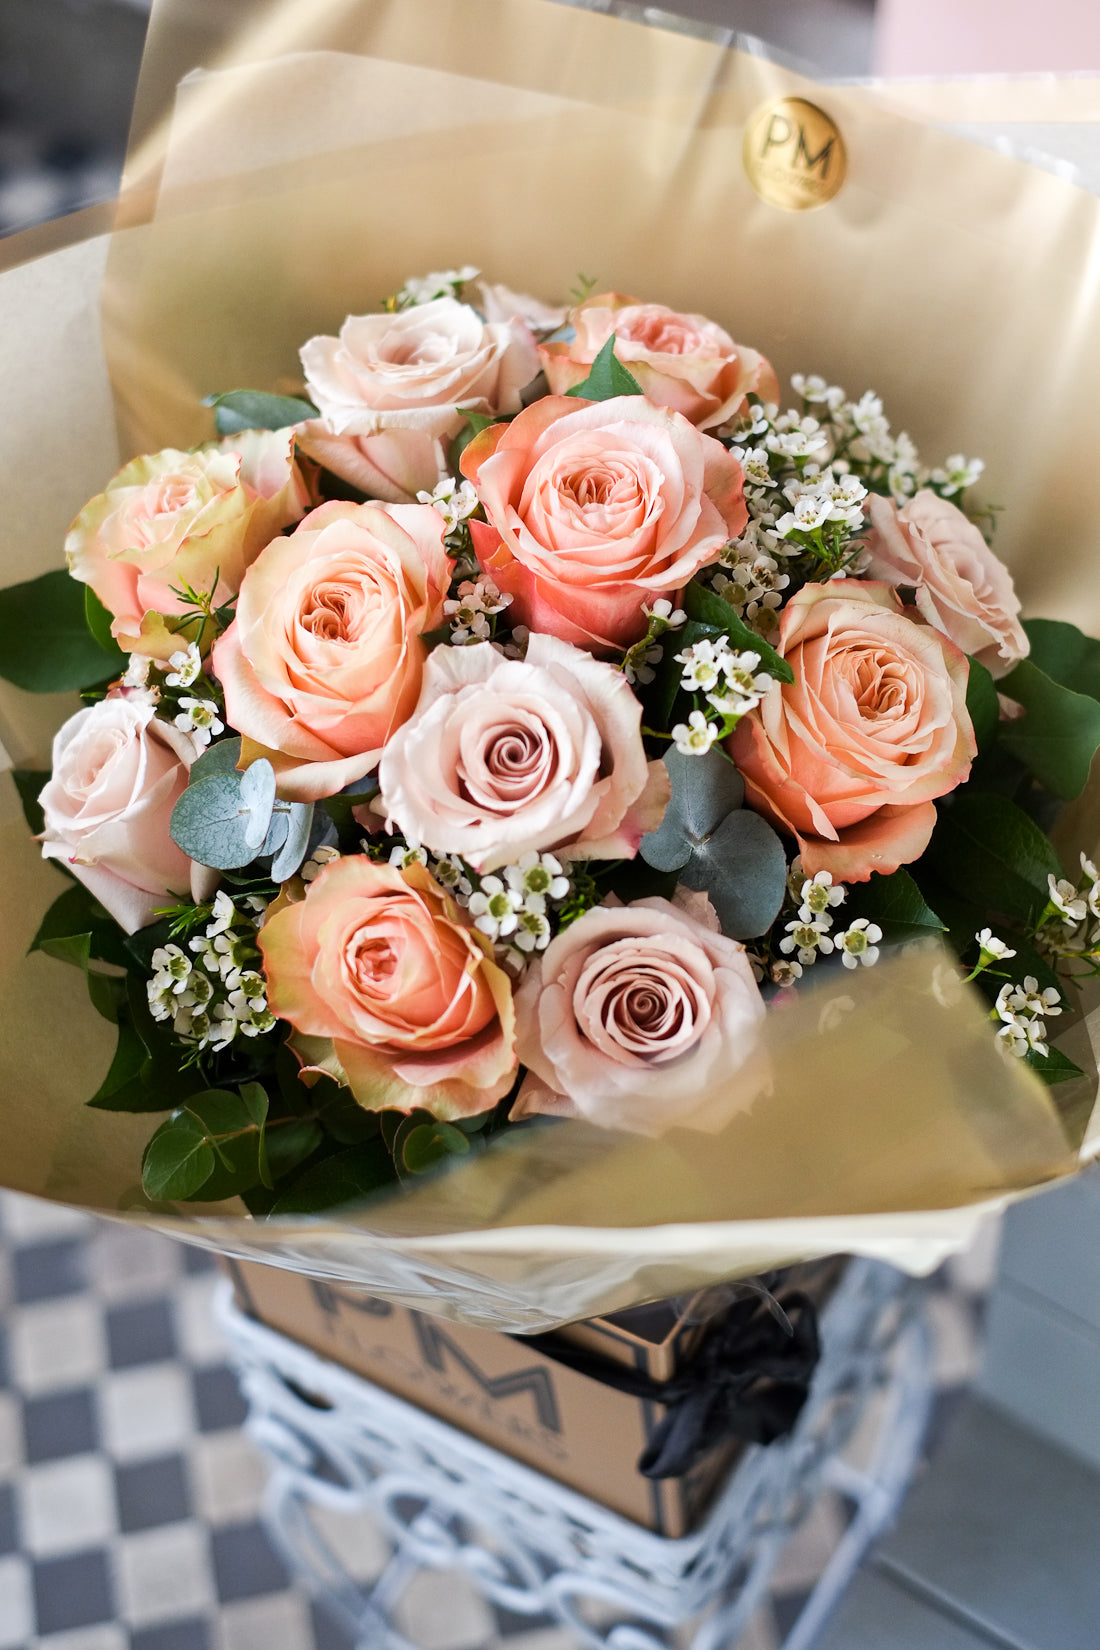 A simple yet lavish bouquet. Combination of stunning sand and peach roses with white waxflower. Delivery in London